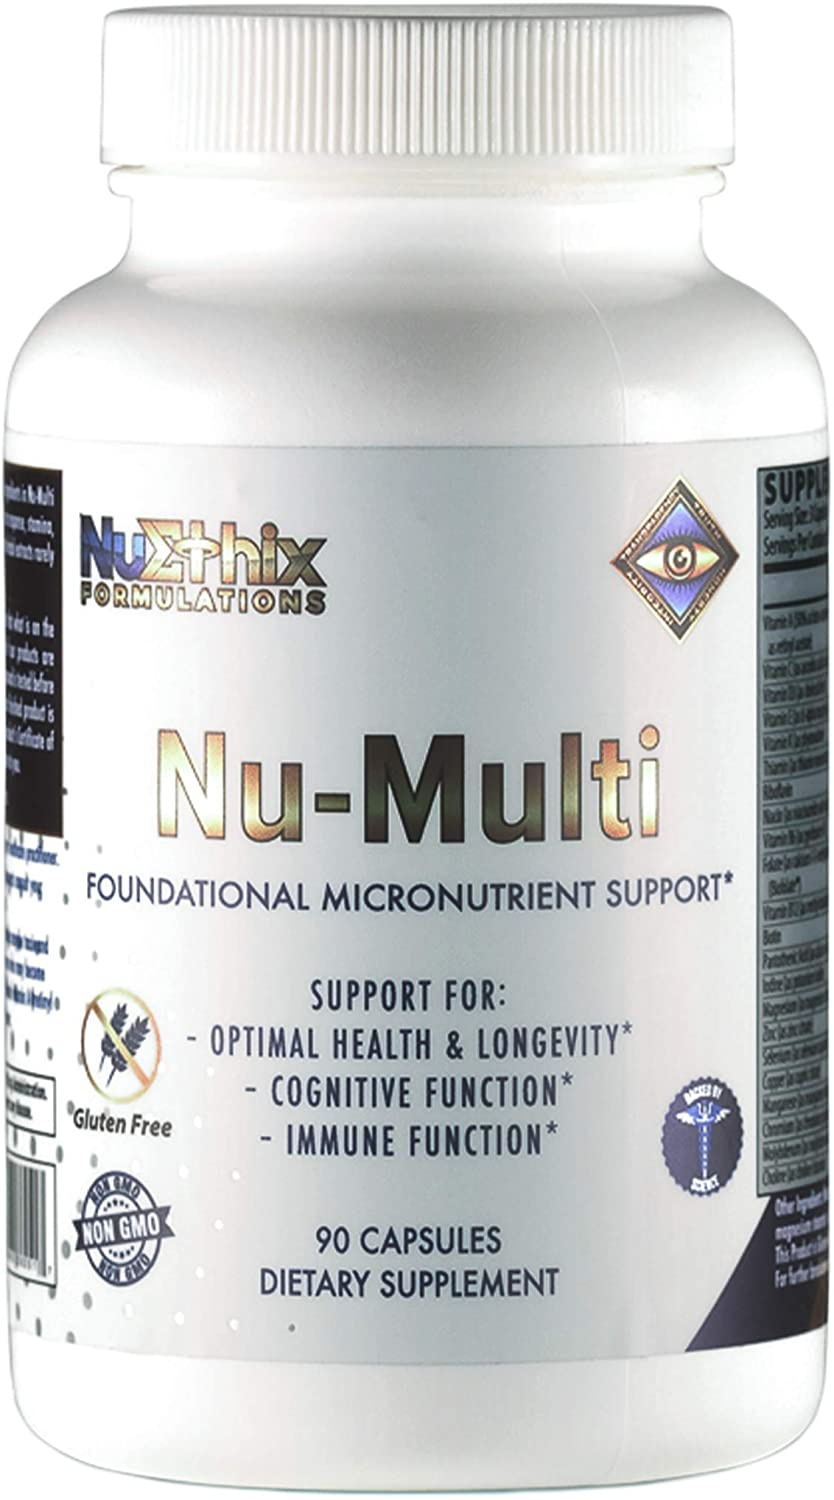 NuEthix Formulations Nu-Multi Foundational Micronutrient Support for Immune Function, Optimal Health and Longevity, Cognitive and Immune Function, 90 Capsules